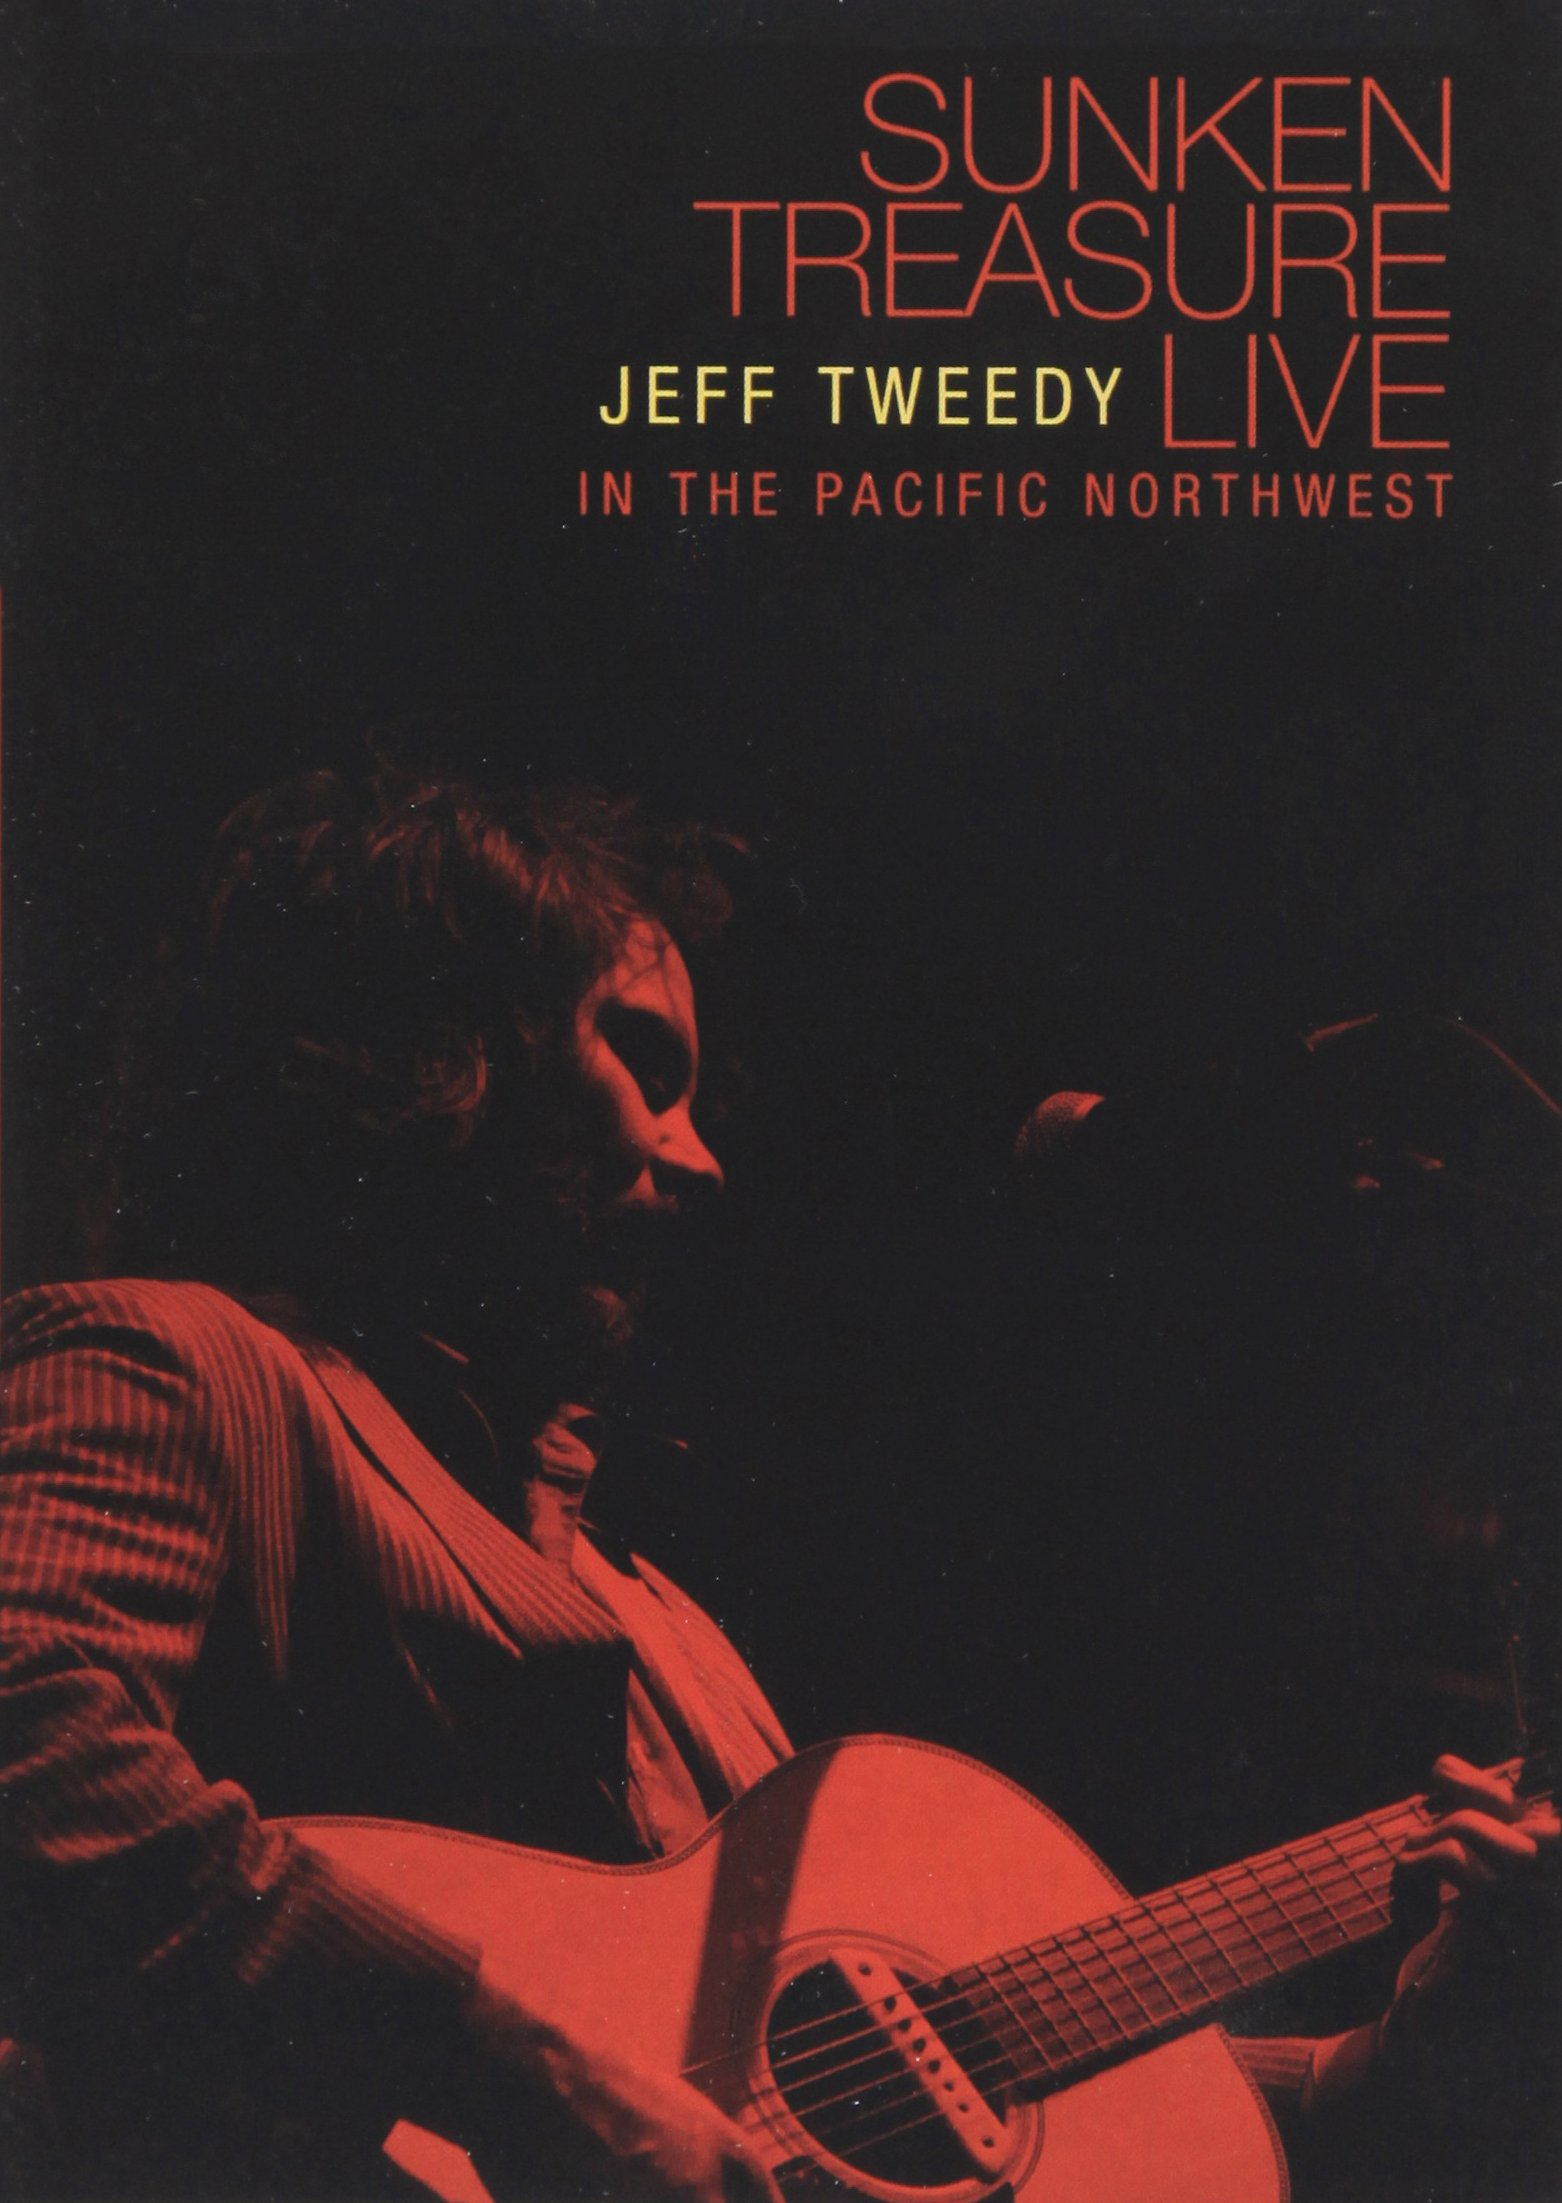 Jeff Tweedy - Sunken Treasure - Live in the Pacific Northwest by WEA DES Moines Video